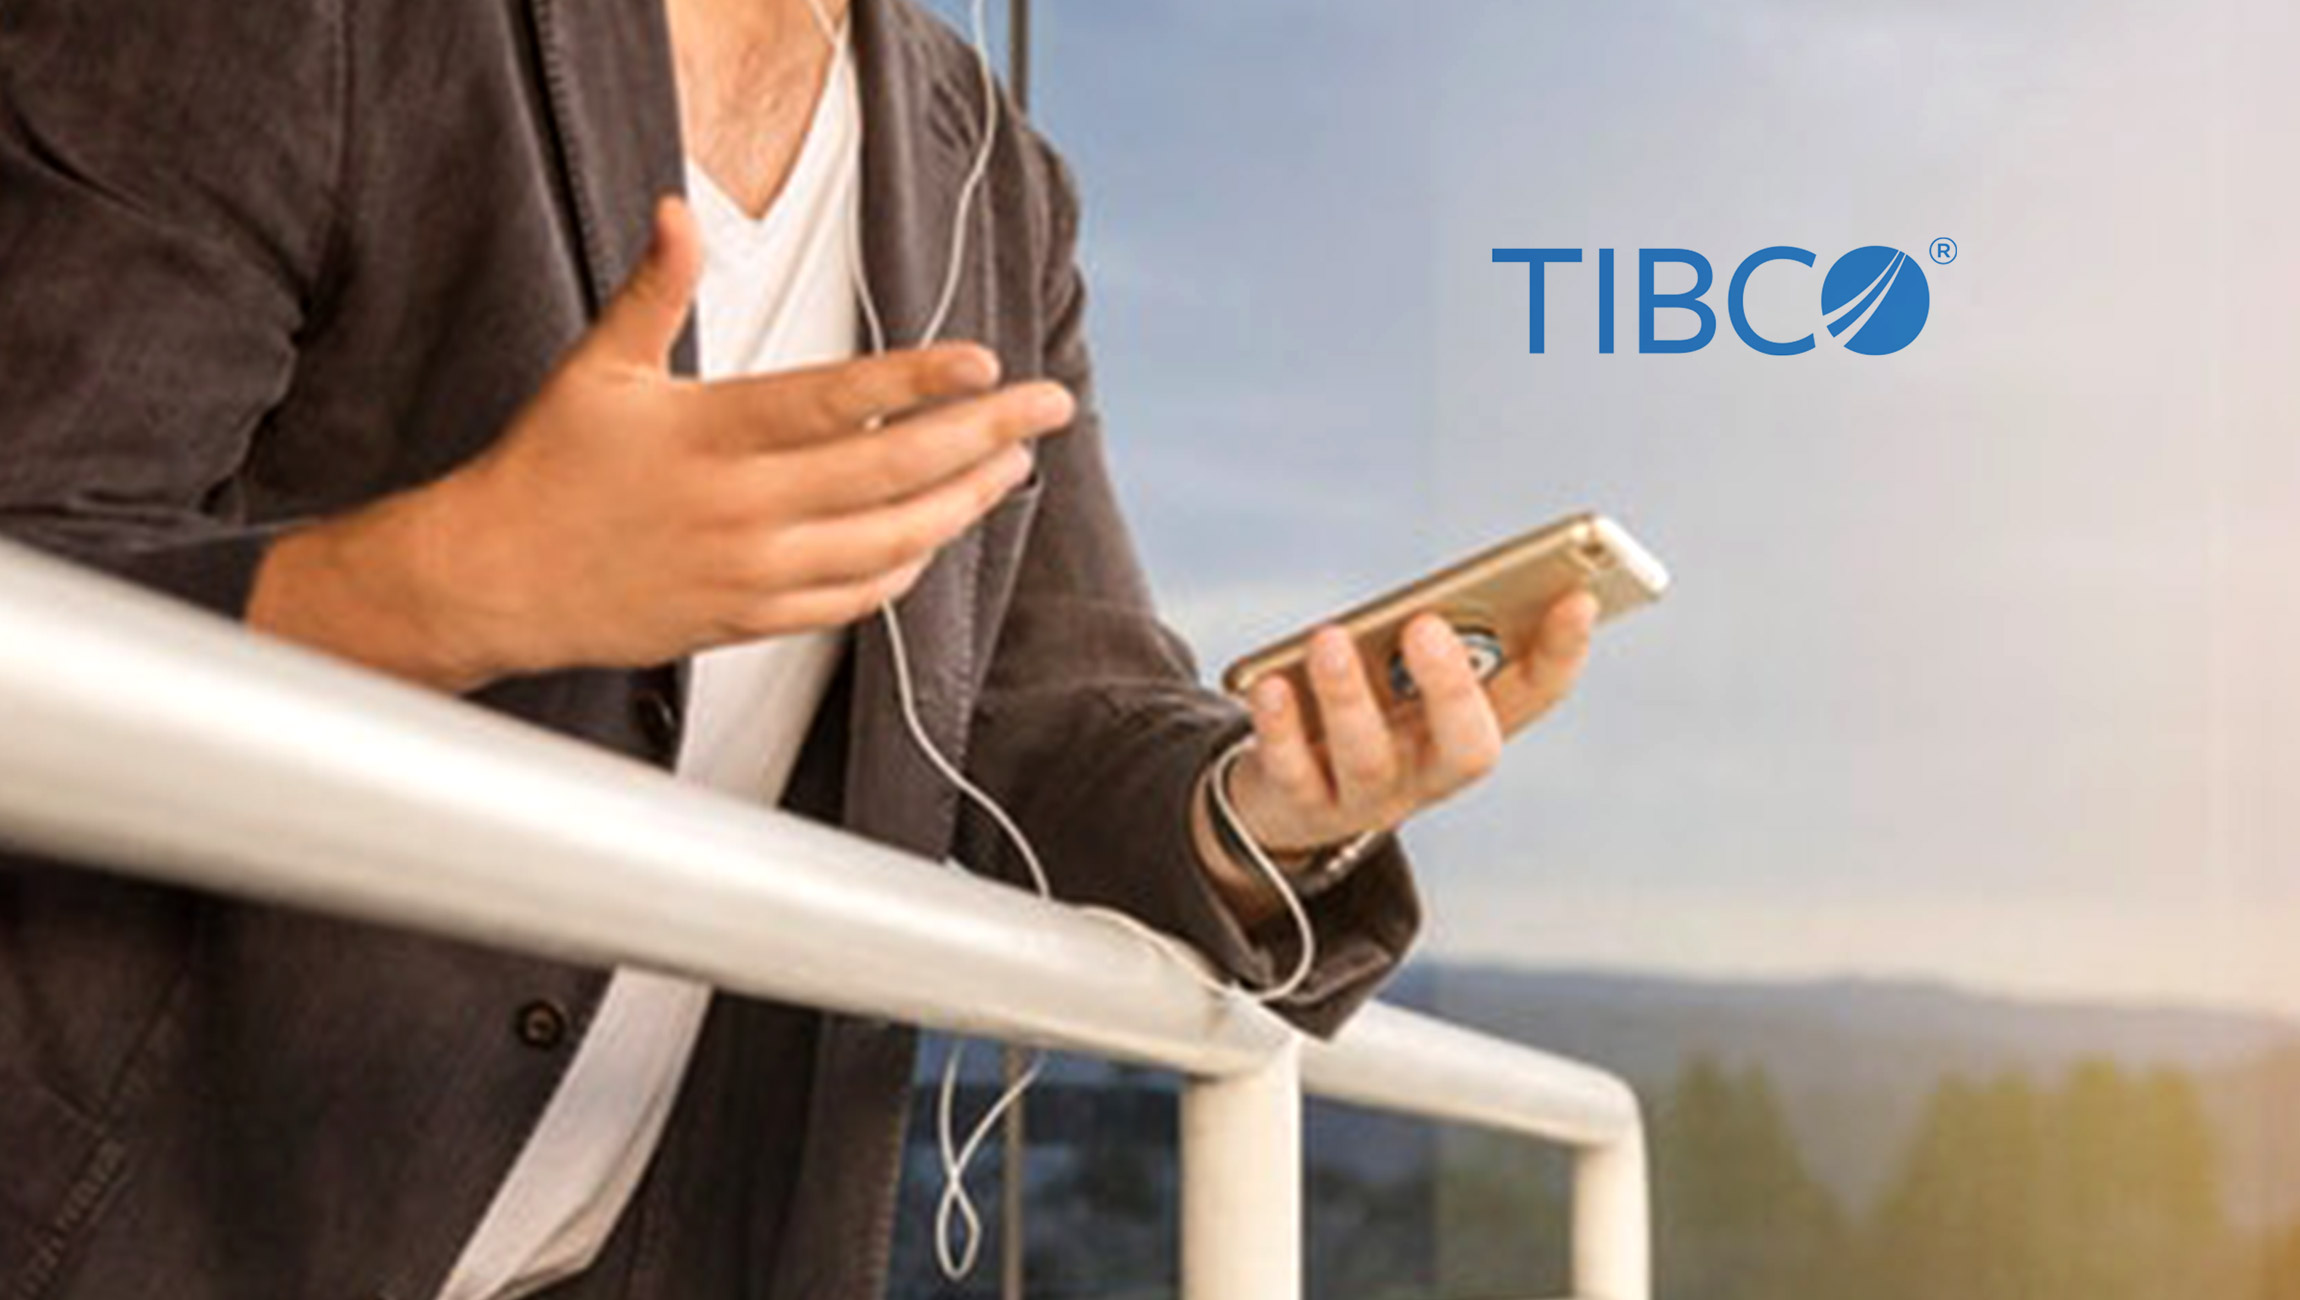 TIBCO Names Dan Streetman as Chief Executive Officer, Murray Rode as Vice Chairman